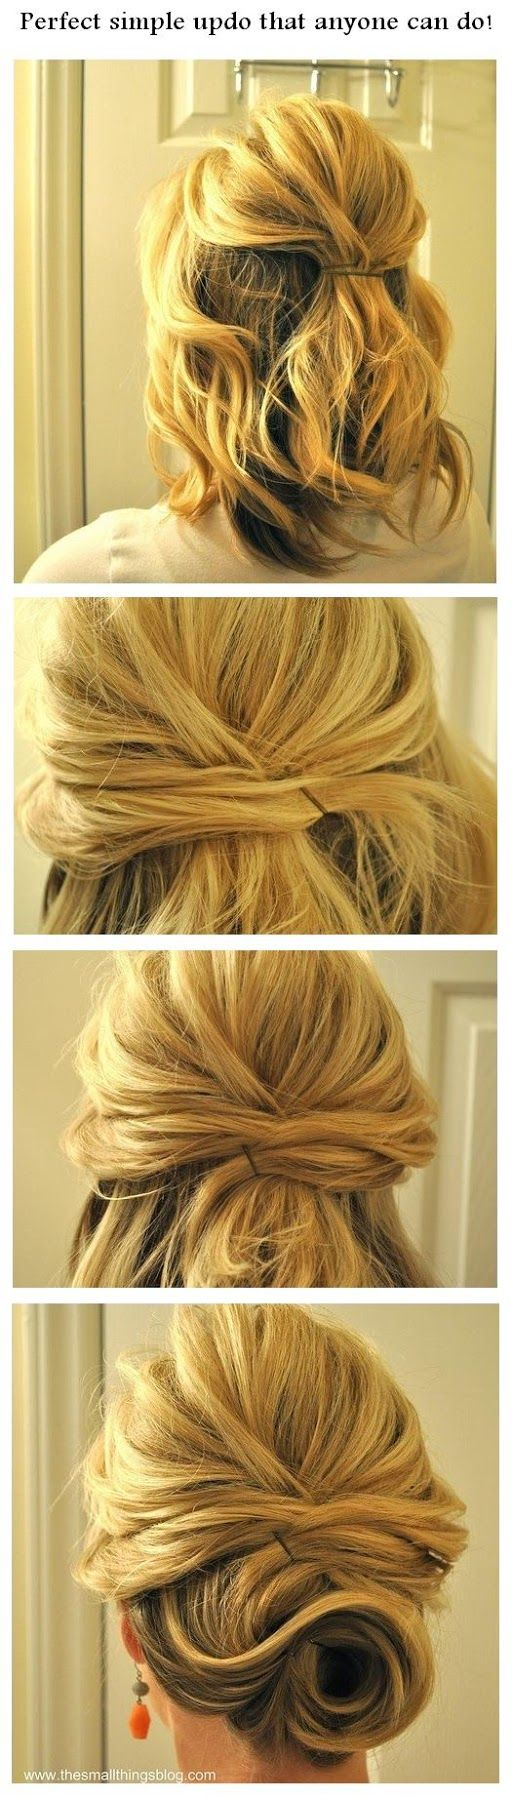 http://hairstyles-tutorial.blogspot.ca/2012/12/perfect-simple-updo-that-anyone-can-do.html